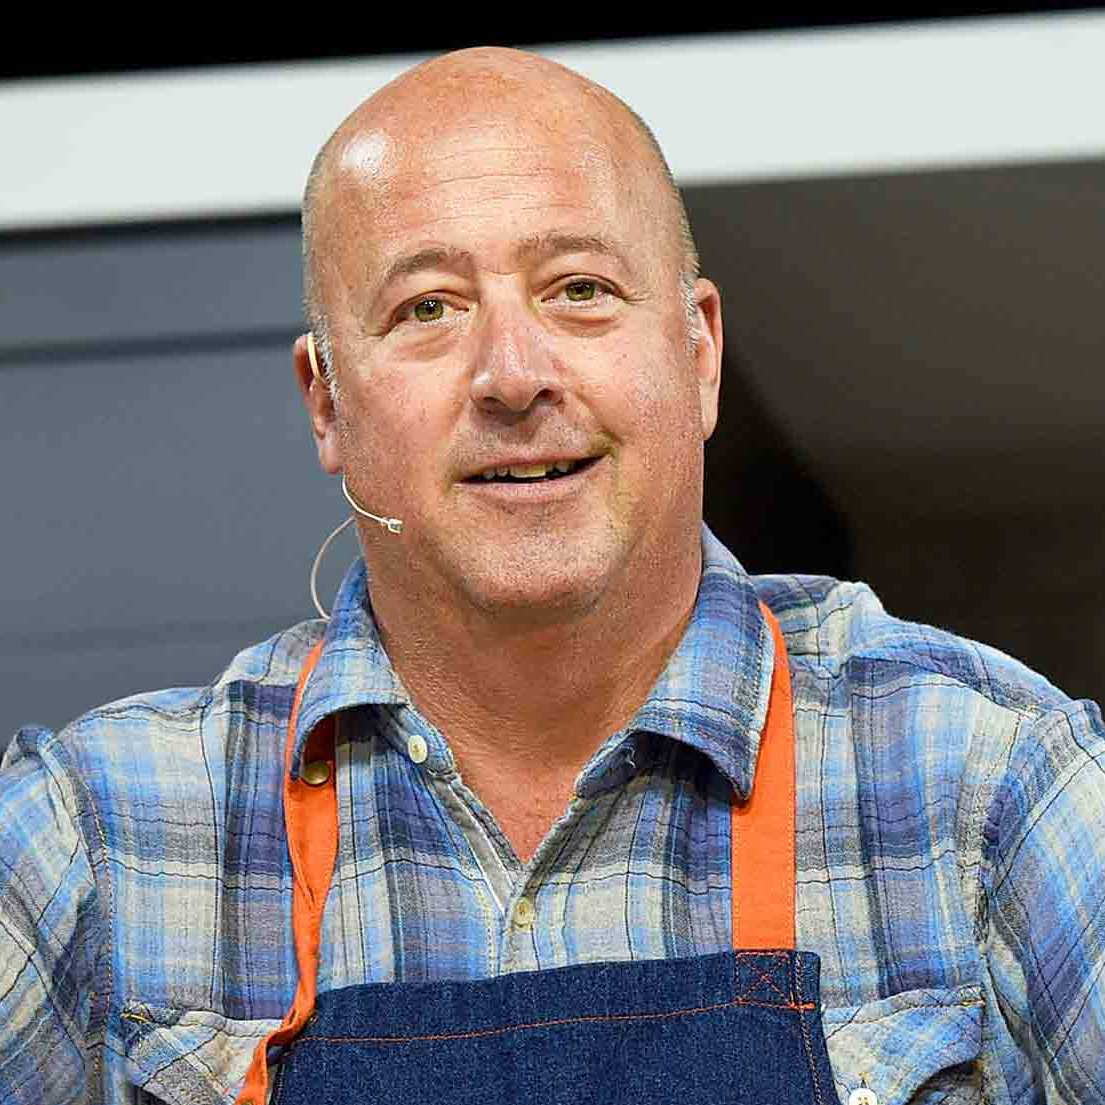 Chef Andrew Zimmern at the 2016 Food Network & Cooking Channel New York City Wine & Food Festival in New York City.